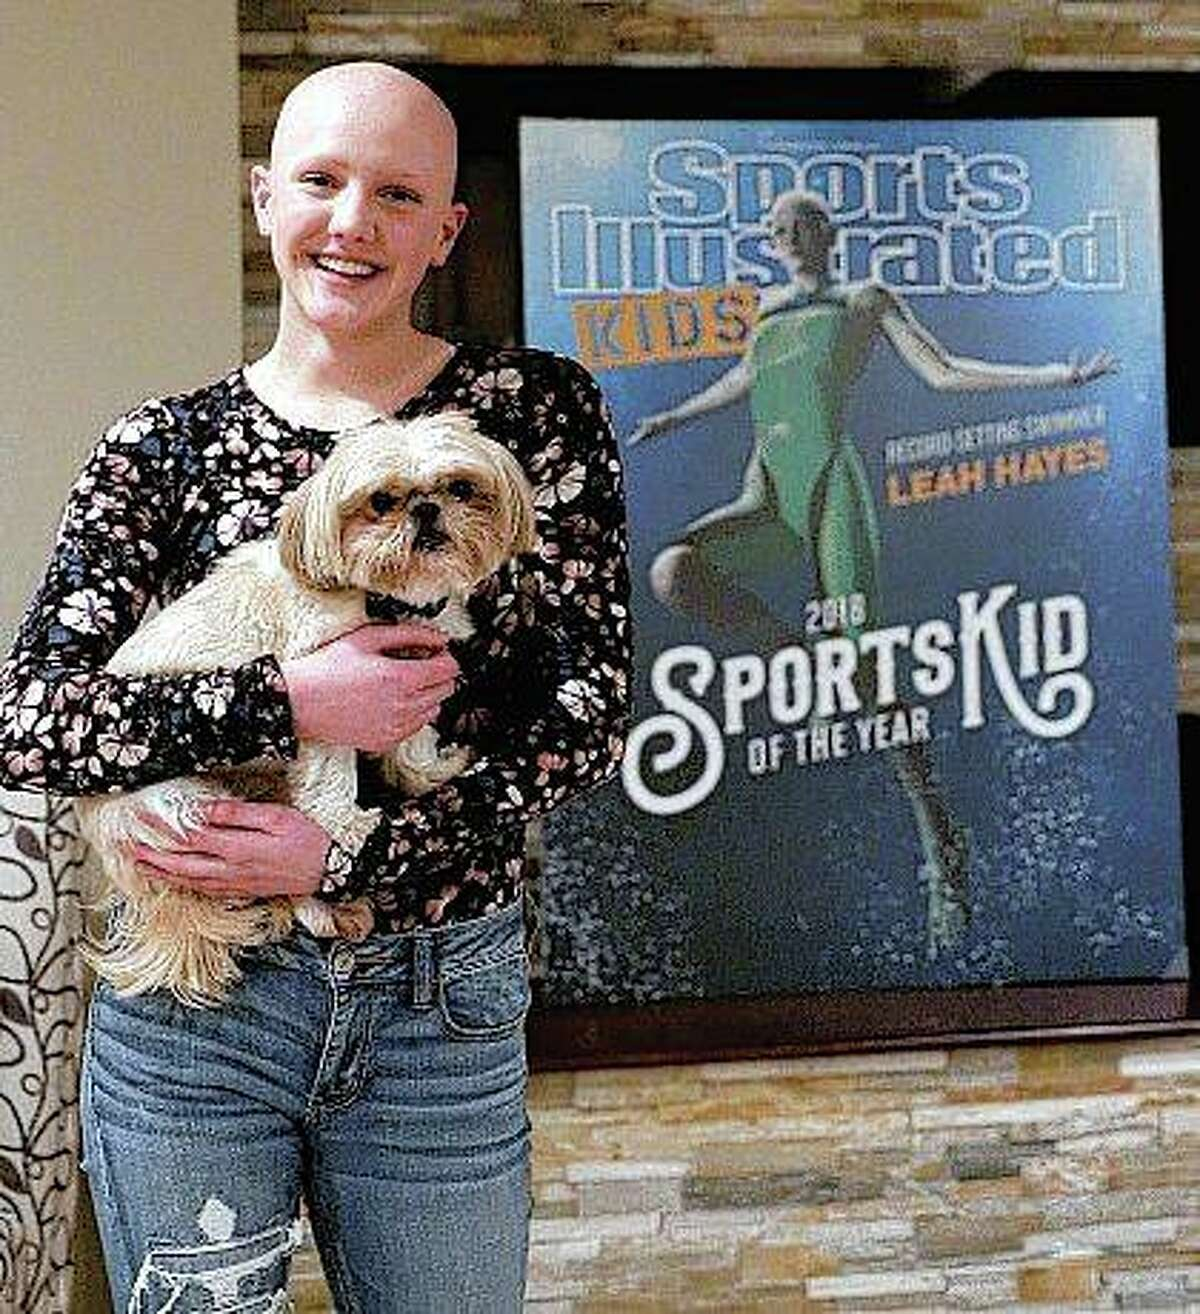 At 13 and almost 5 feet, 7 inches tall, swimmer Leah Hayes has realistic dreams of making an Olympic trials cut next year, and eventually of making the U.S. Olympic team. As a 6-year-old, she was diagnosed with alopecia universalis, which meant she soon would be completely bald. In just four months, she lost all the hair on her scalp and body.